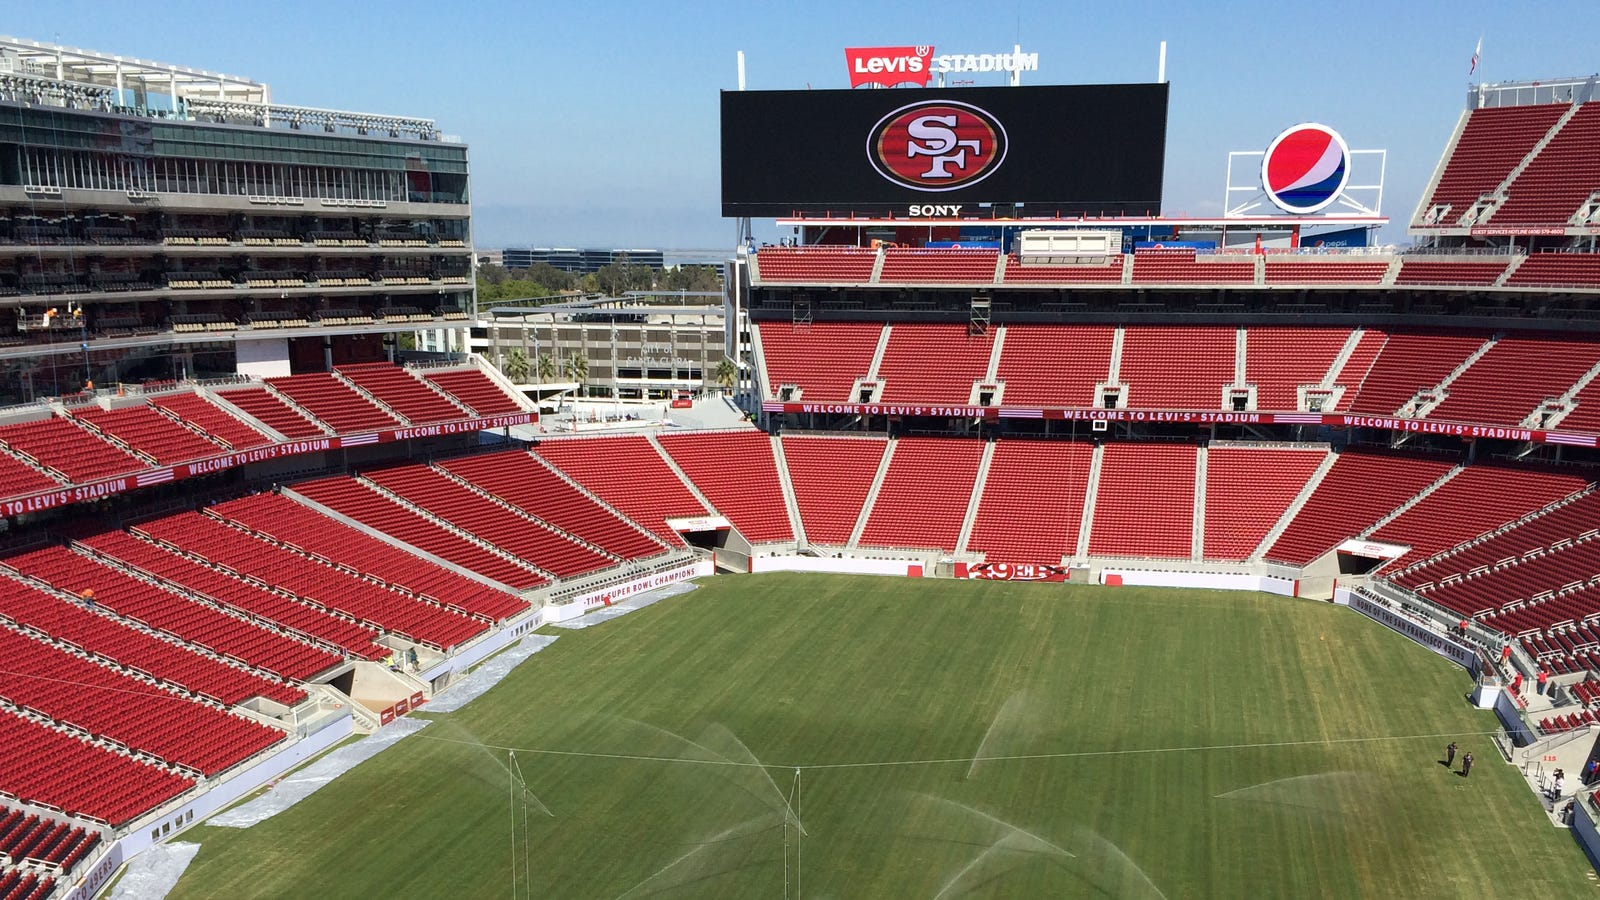 Levis Stadium Capacity >> Behind the Scenes at the San Francisco 49ers' New High ...